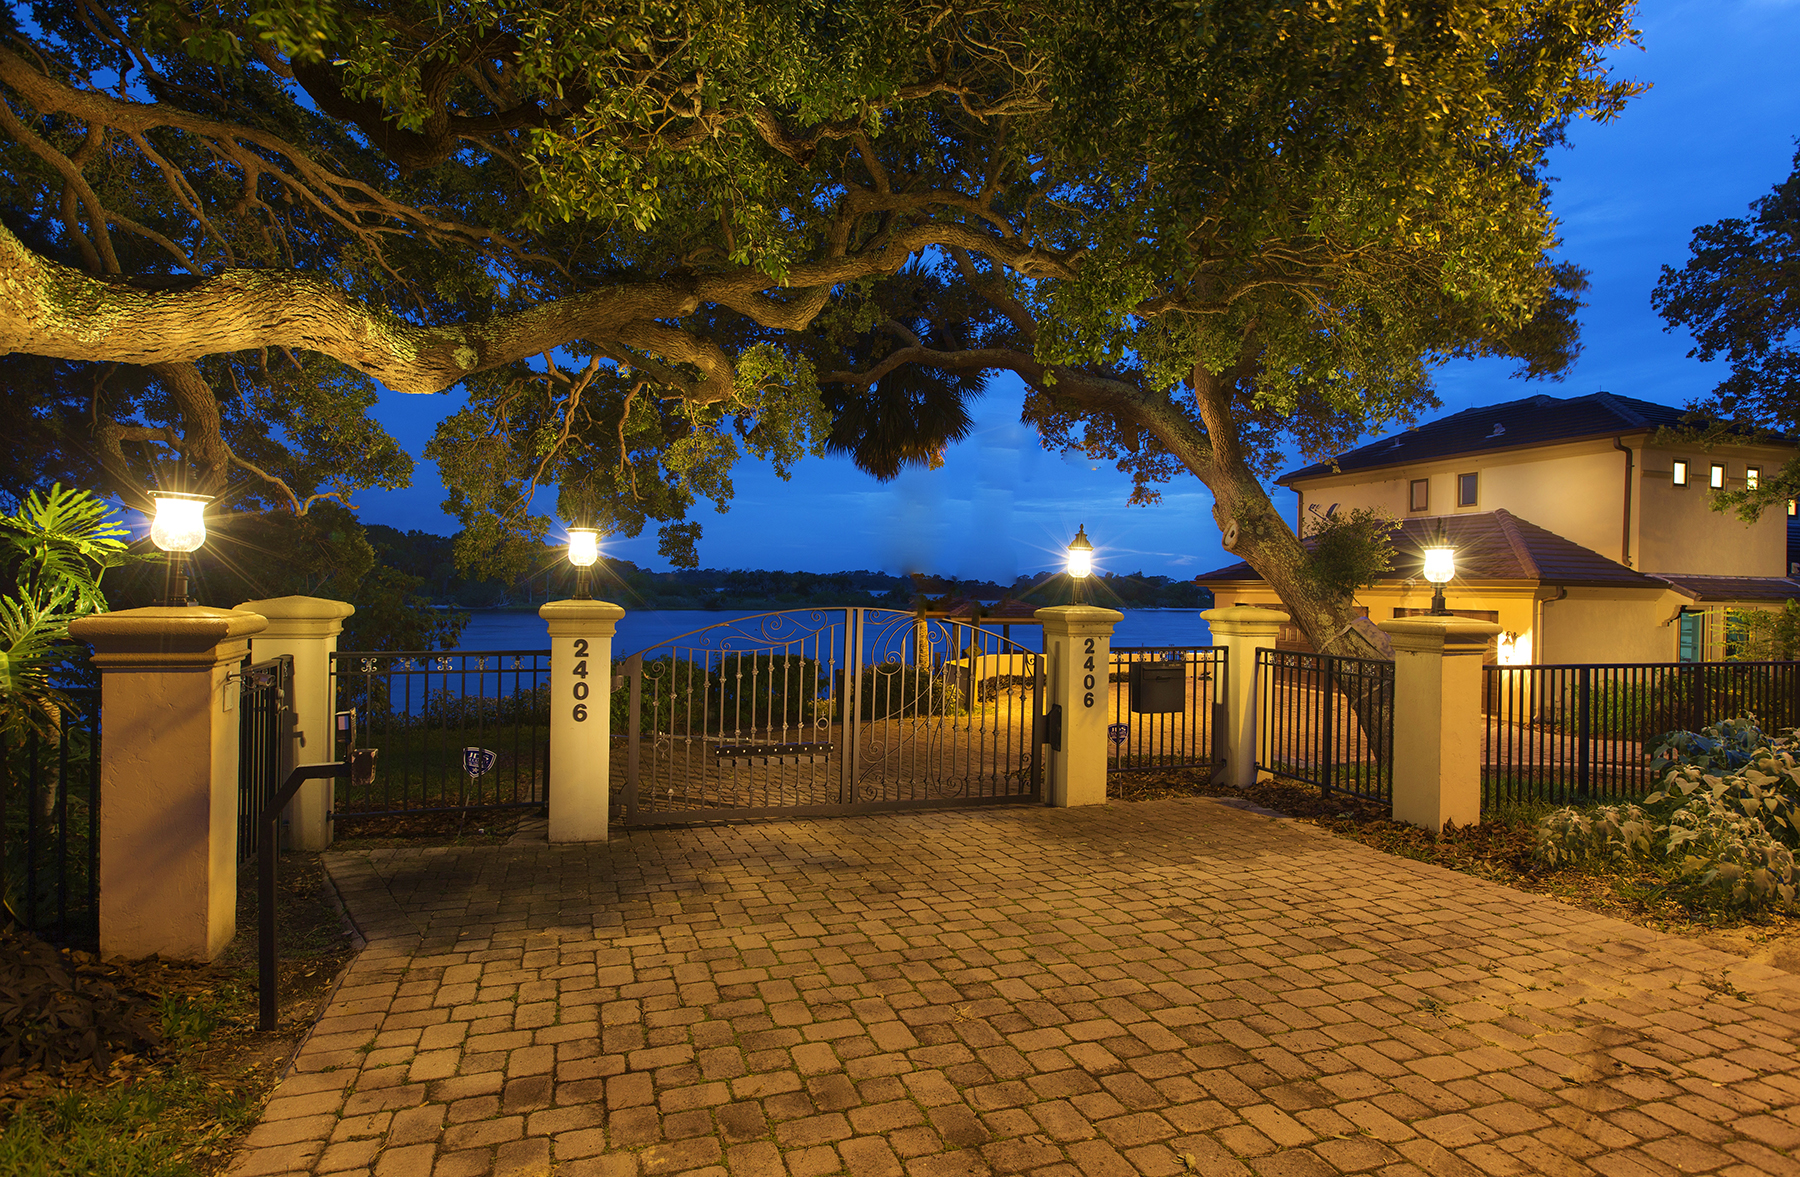 Single Family Home for Sale at ORMOND BEACH FLORIDA 2406 John Anderson Dr, Ormond Beach, Florida 32176 United States